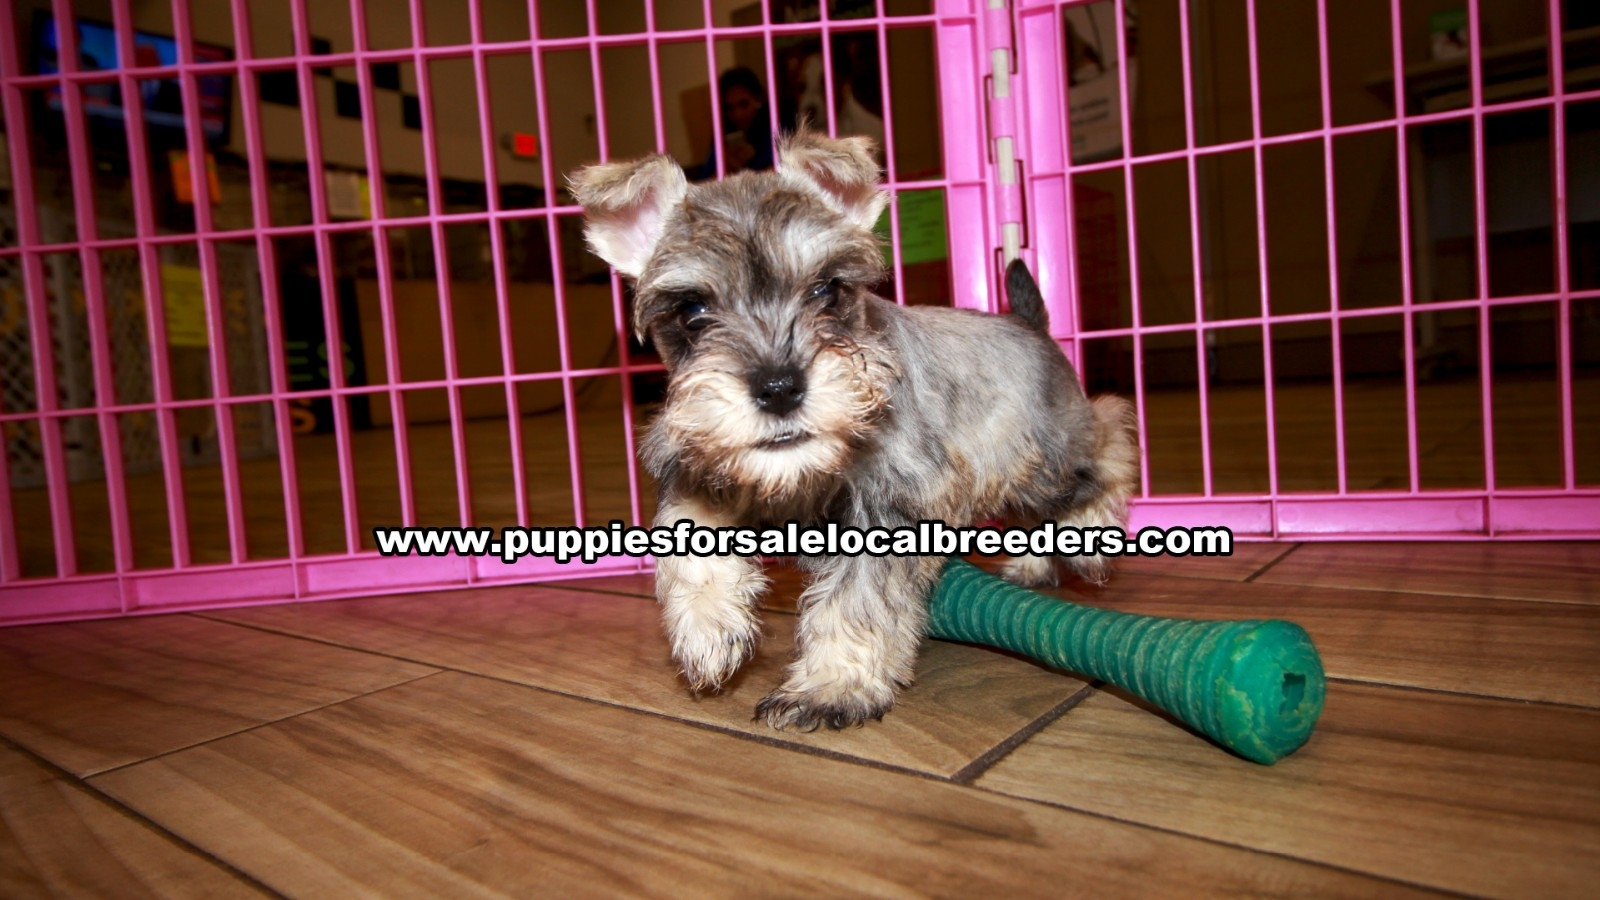 Mini Schnauzer, Puppies For Sale In Georgia, Local Breeders, Near Atlanta, Ga